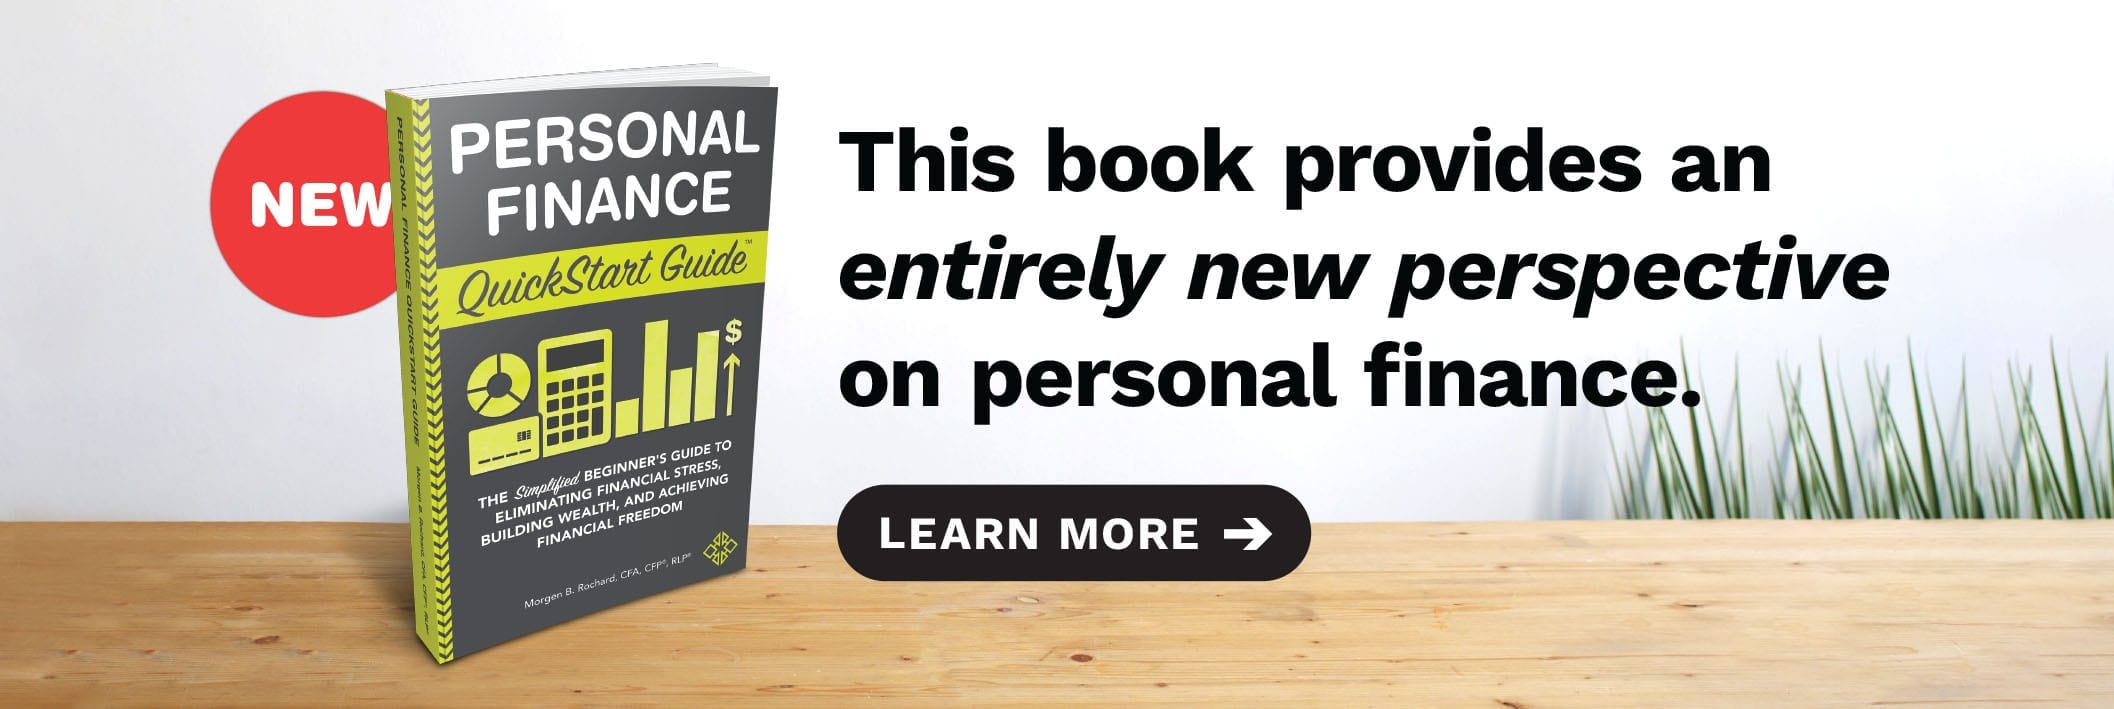 Out Now - Personal Finance QuickStart Guide. Finally, an entirely new perspective on personal finance.